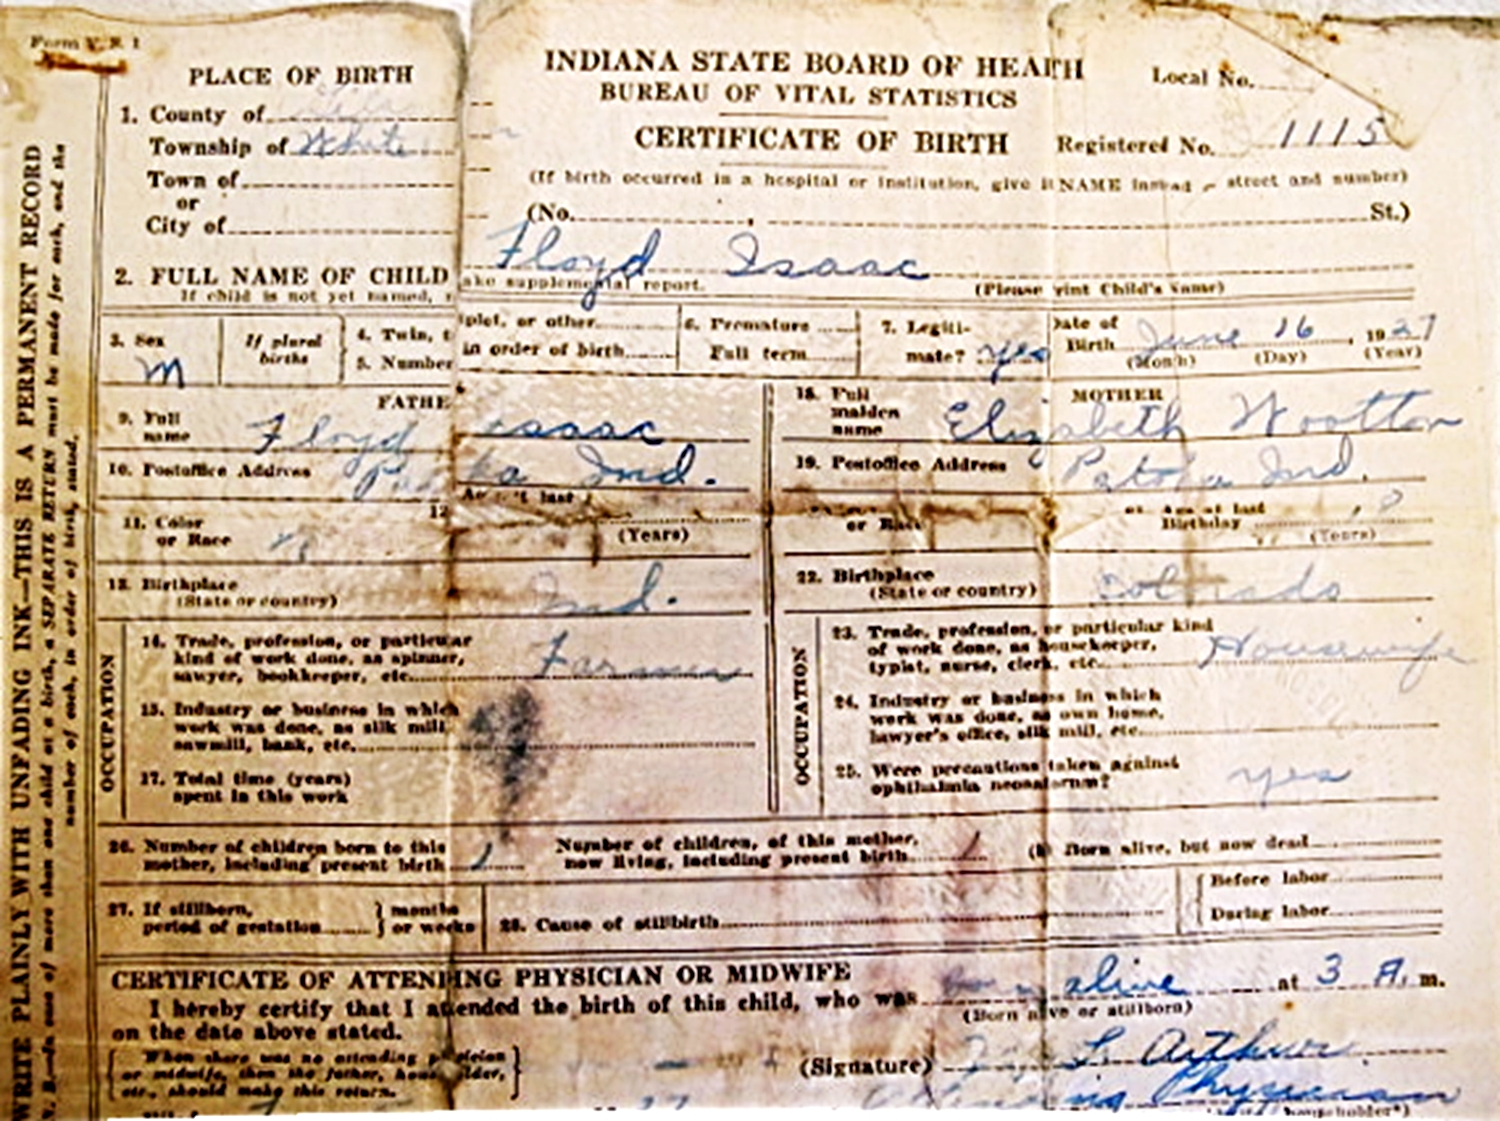 Lester a armstrong floyd isaac jr birth certificate aiddatafo Gallery